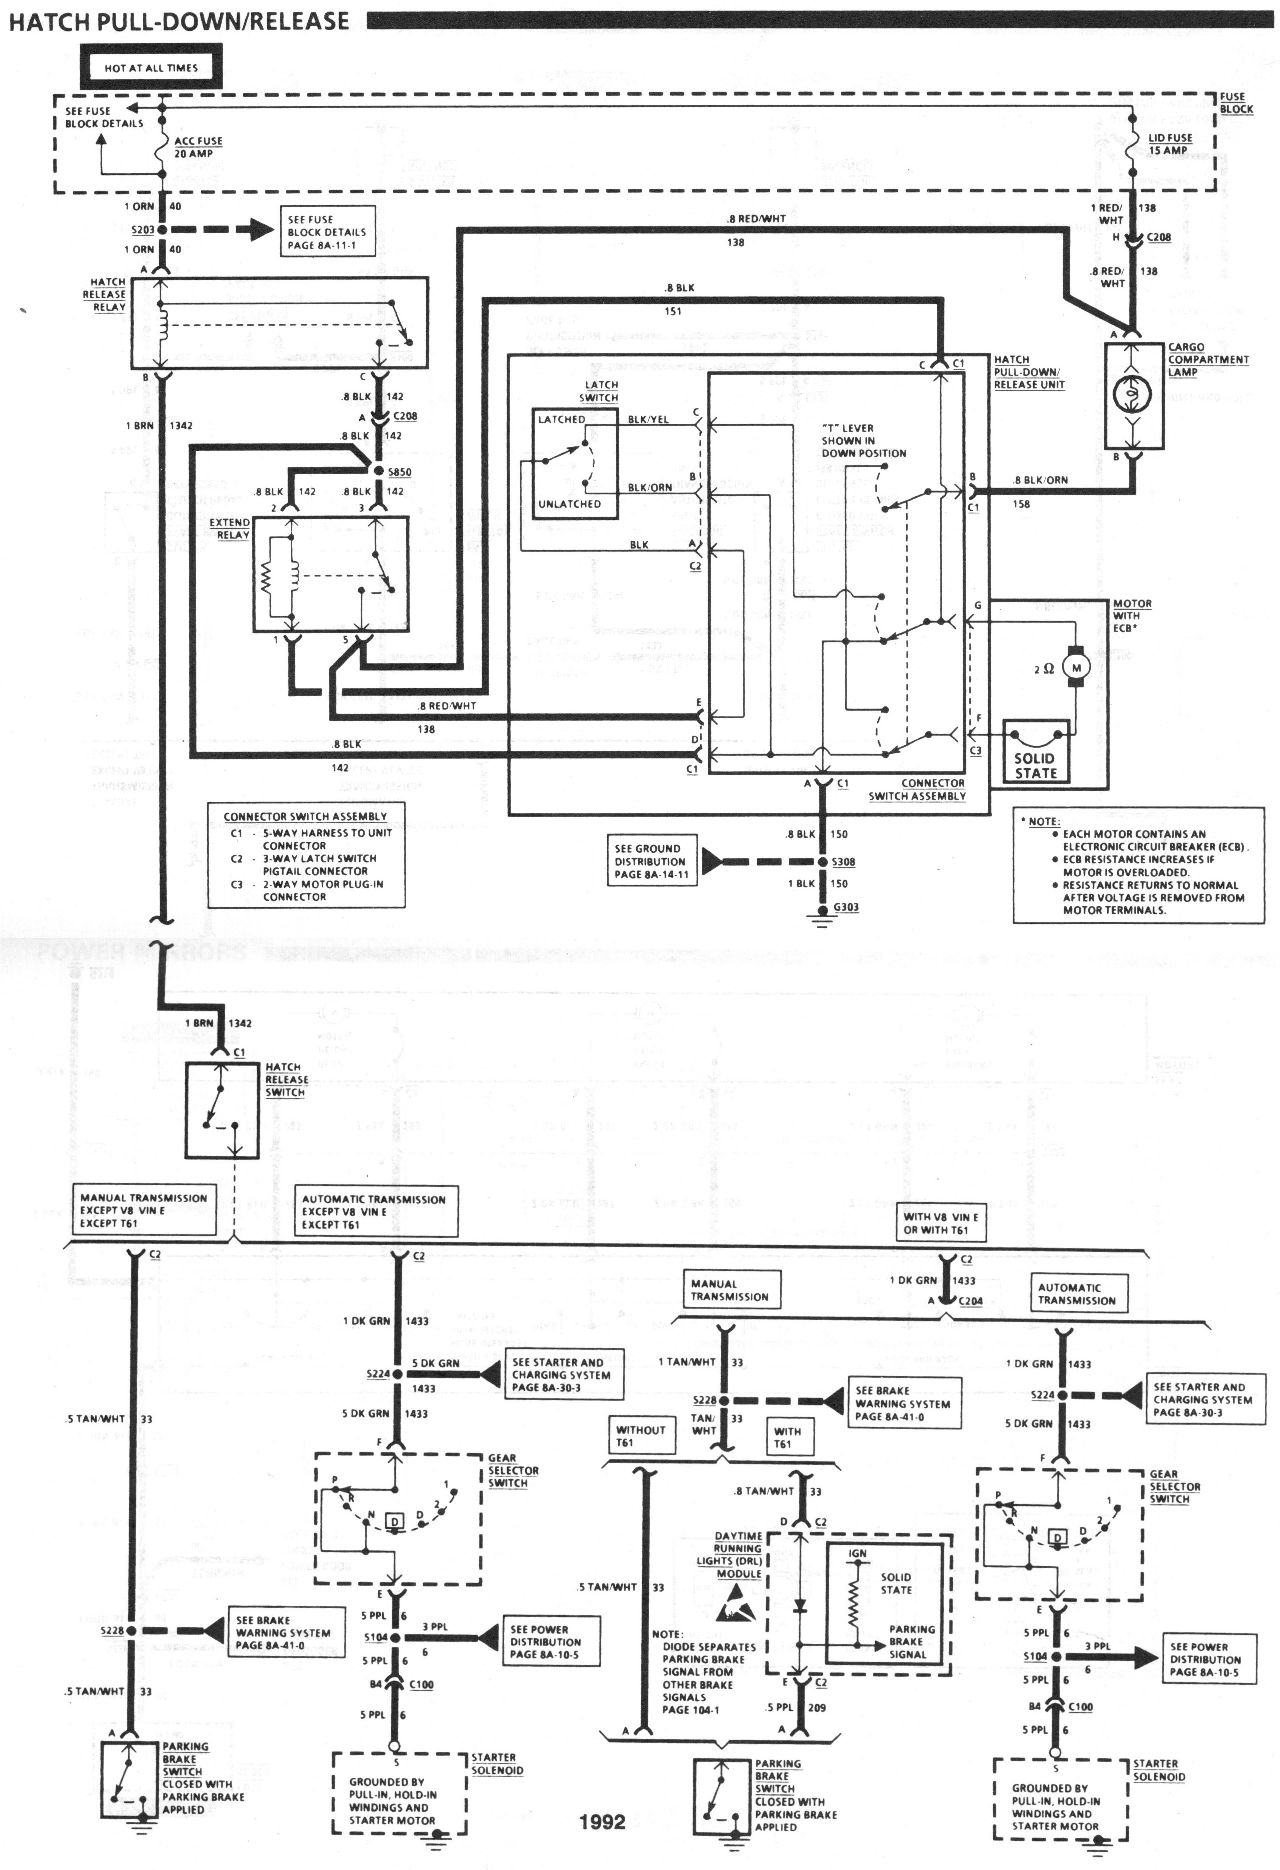 91 92 Hatch Wiring Diagram Needed